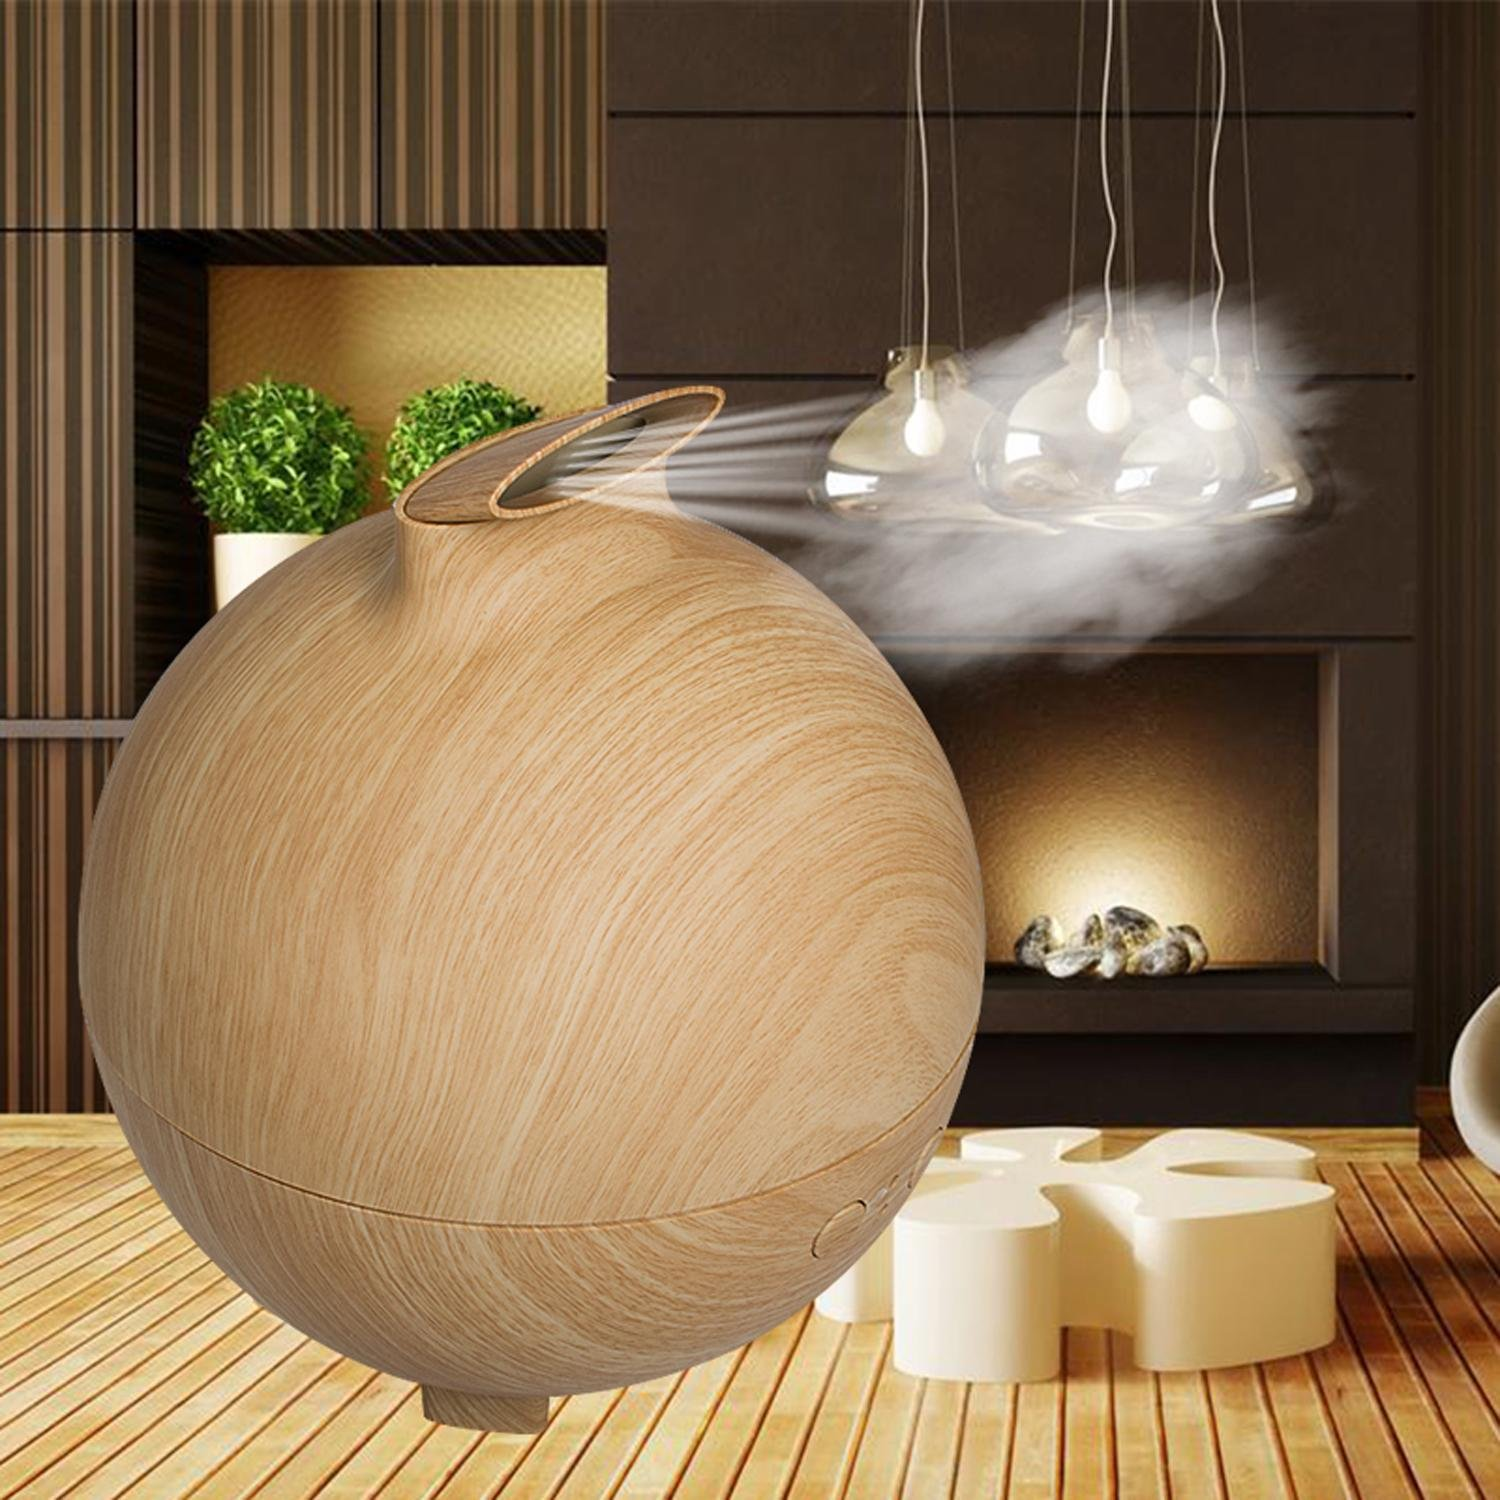 Enshey 500ml Ultrasonic Aroma Essential Oil Diffuser Quiet Cool Mist Humidifier Air Humidifier Automatic Shut-off Essential Oil Fragrance Machine for Office Home Bedroom Baby Room Study Yoga Spa